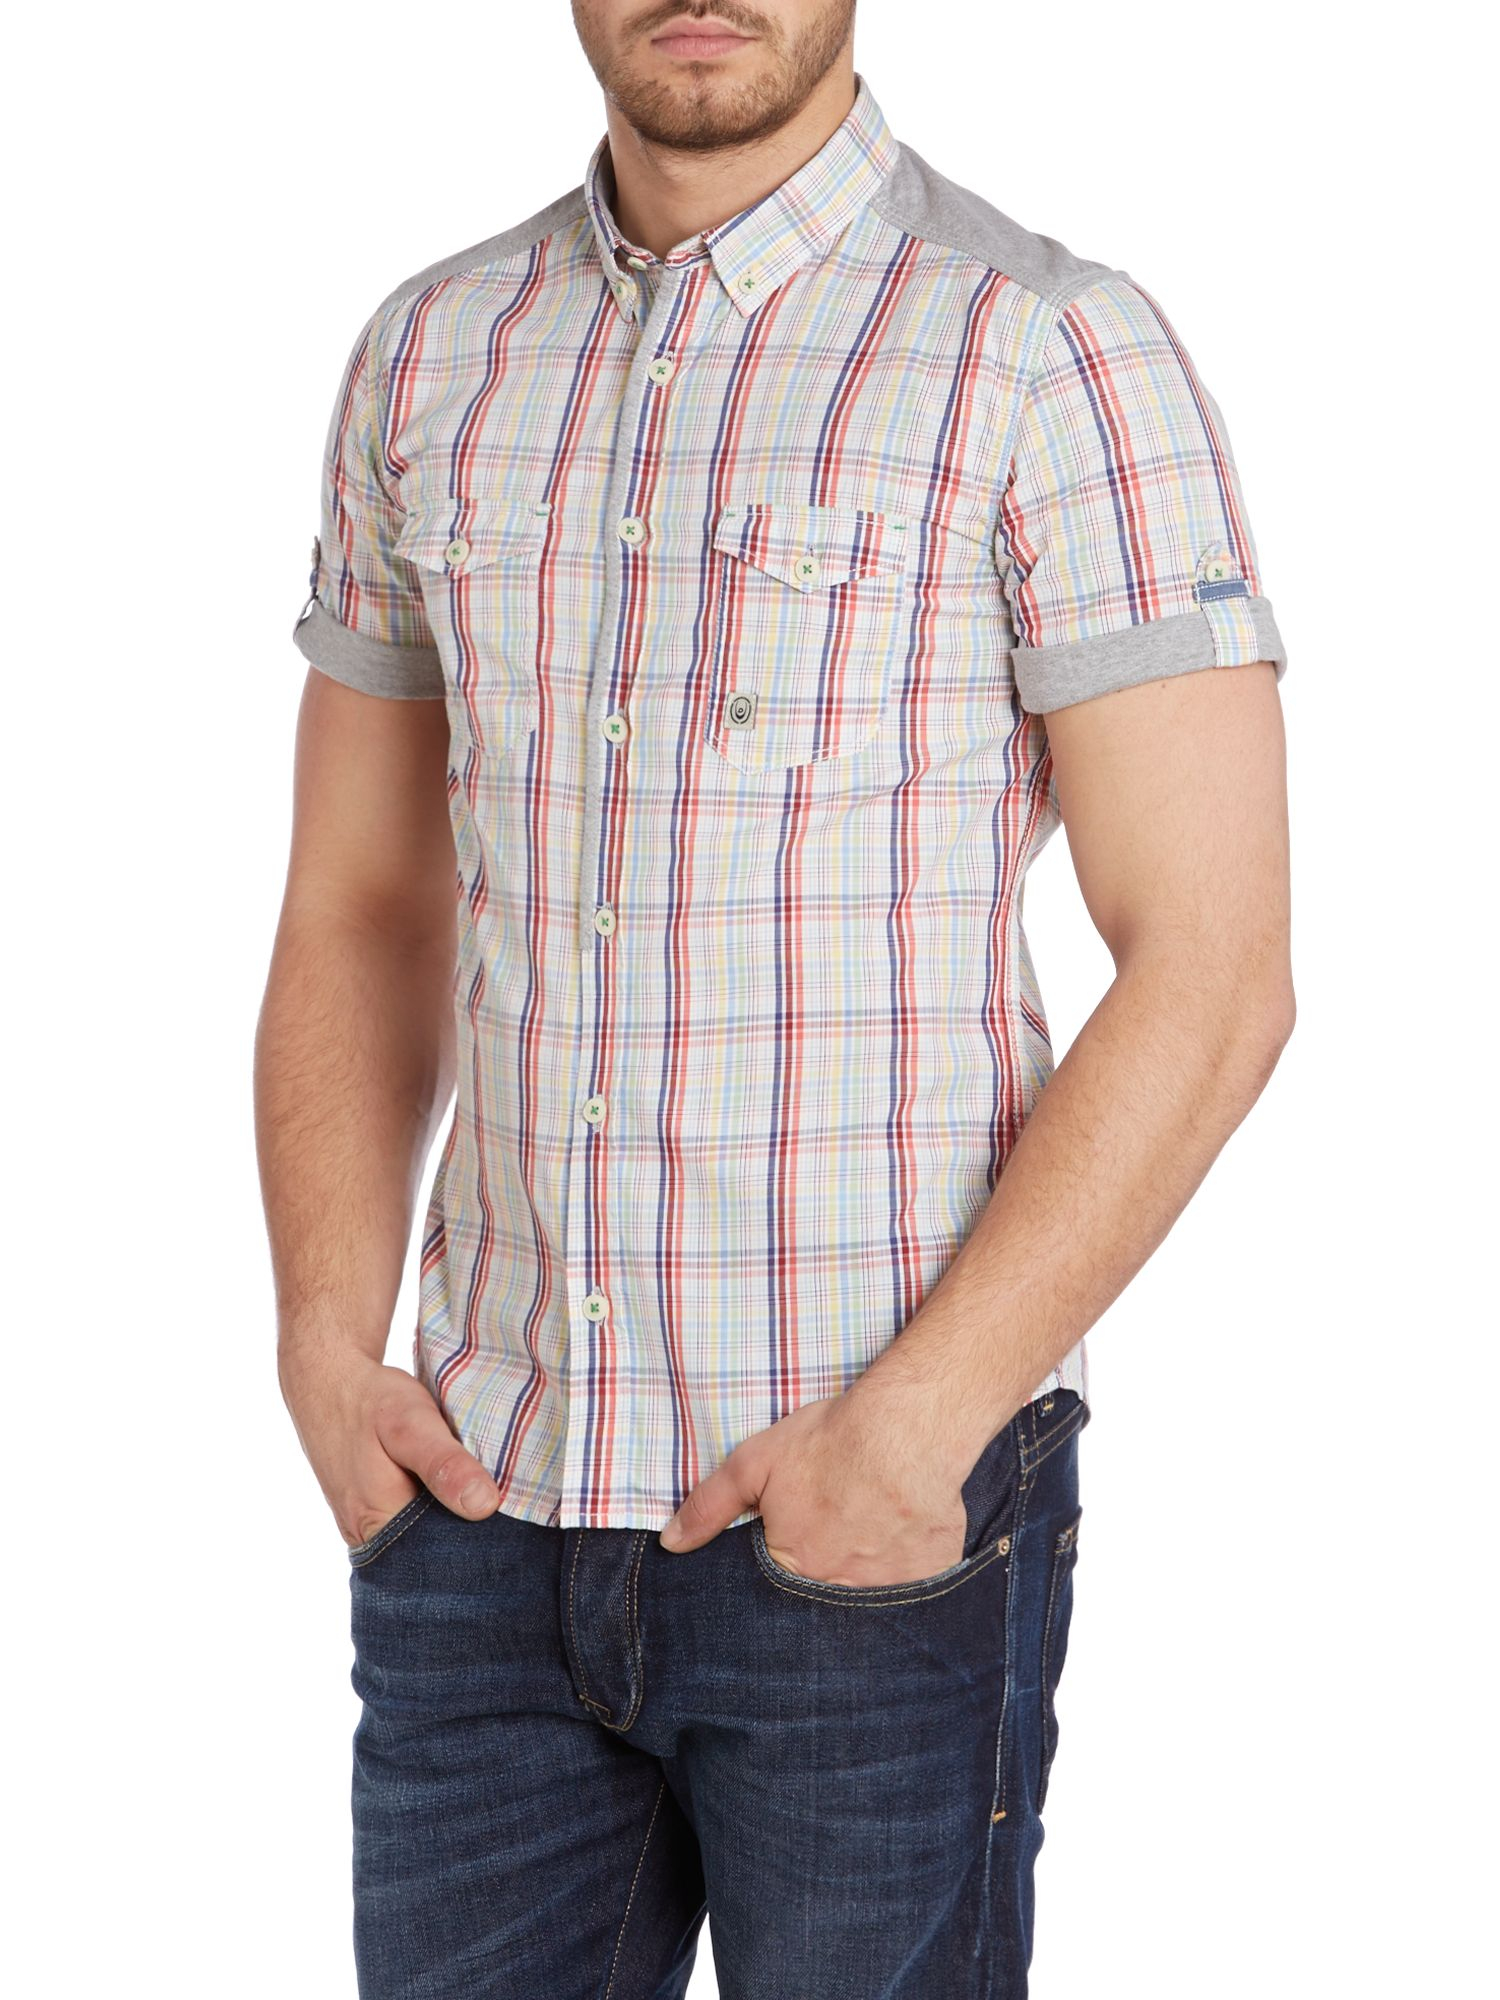 Duck and Cover Cotton Gable Check Shirt with Jersey Trim in Natural for Men